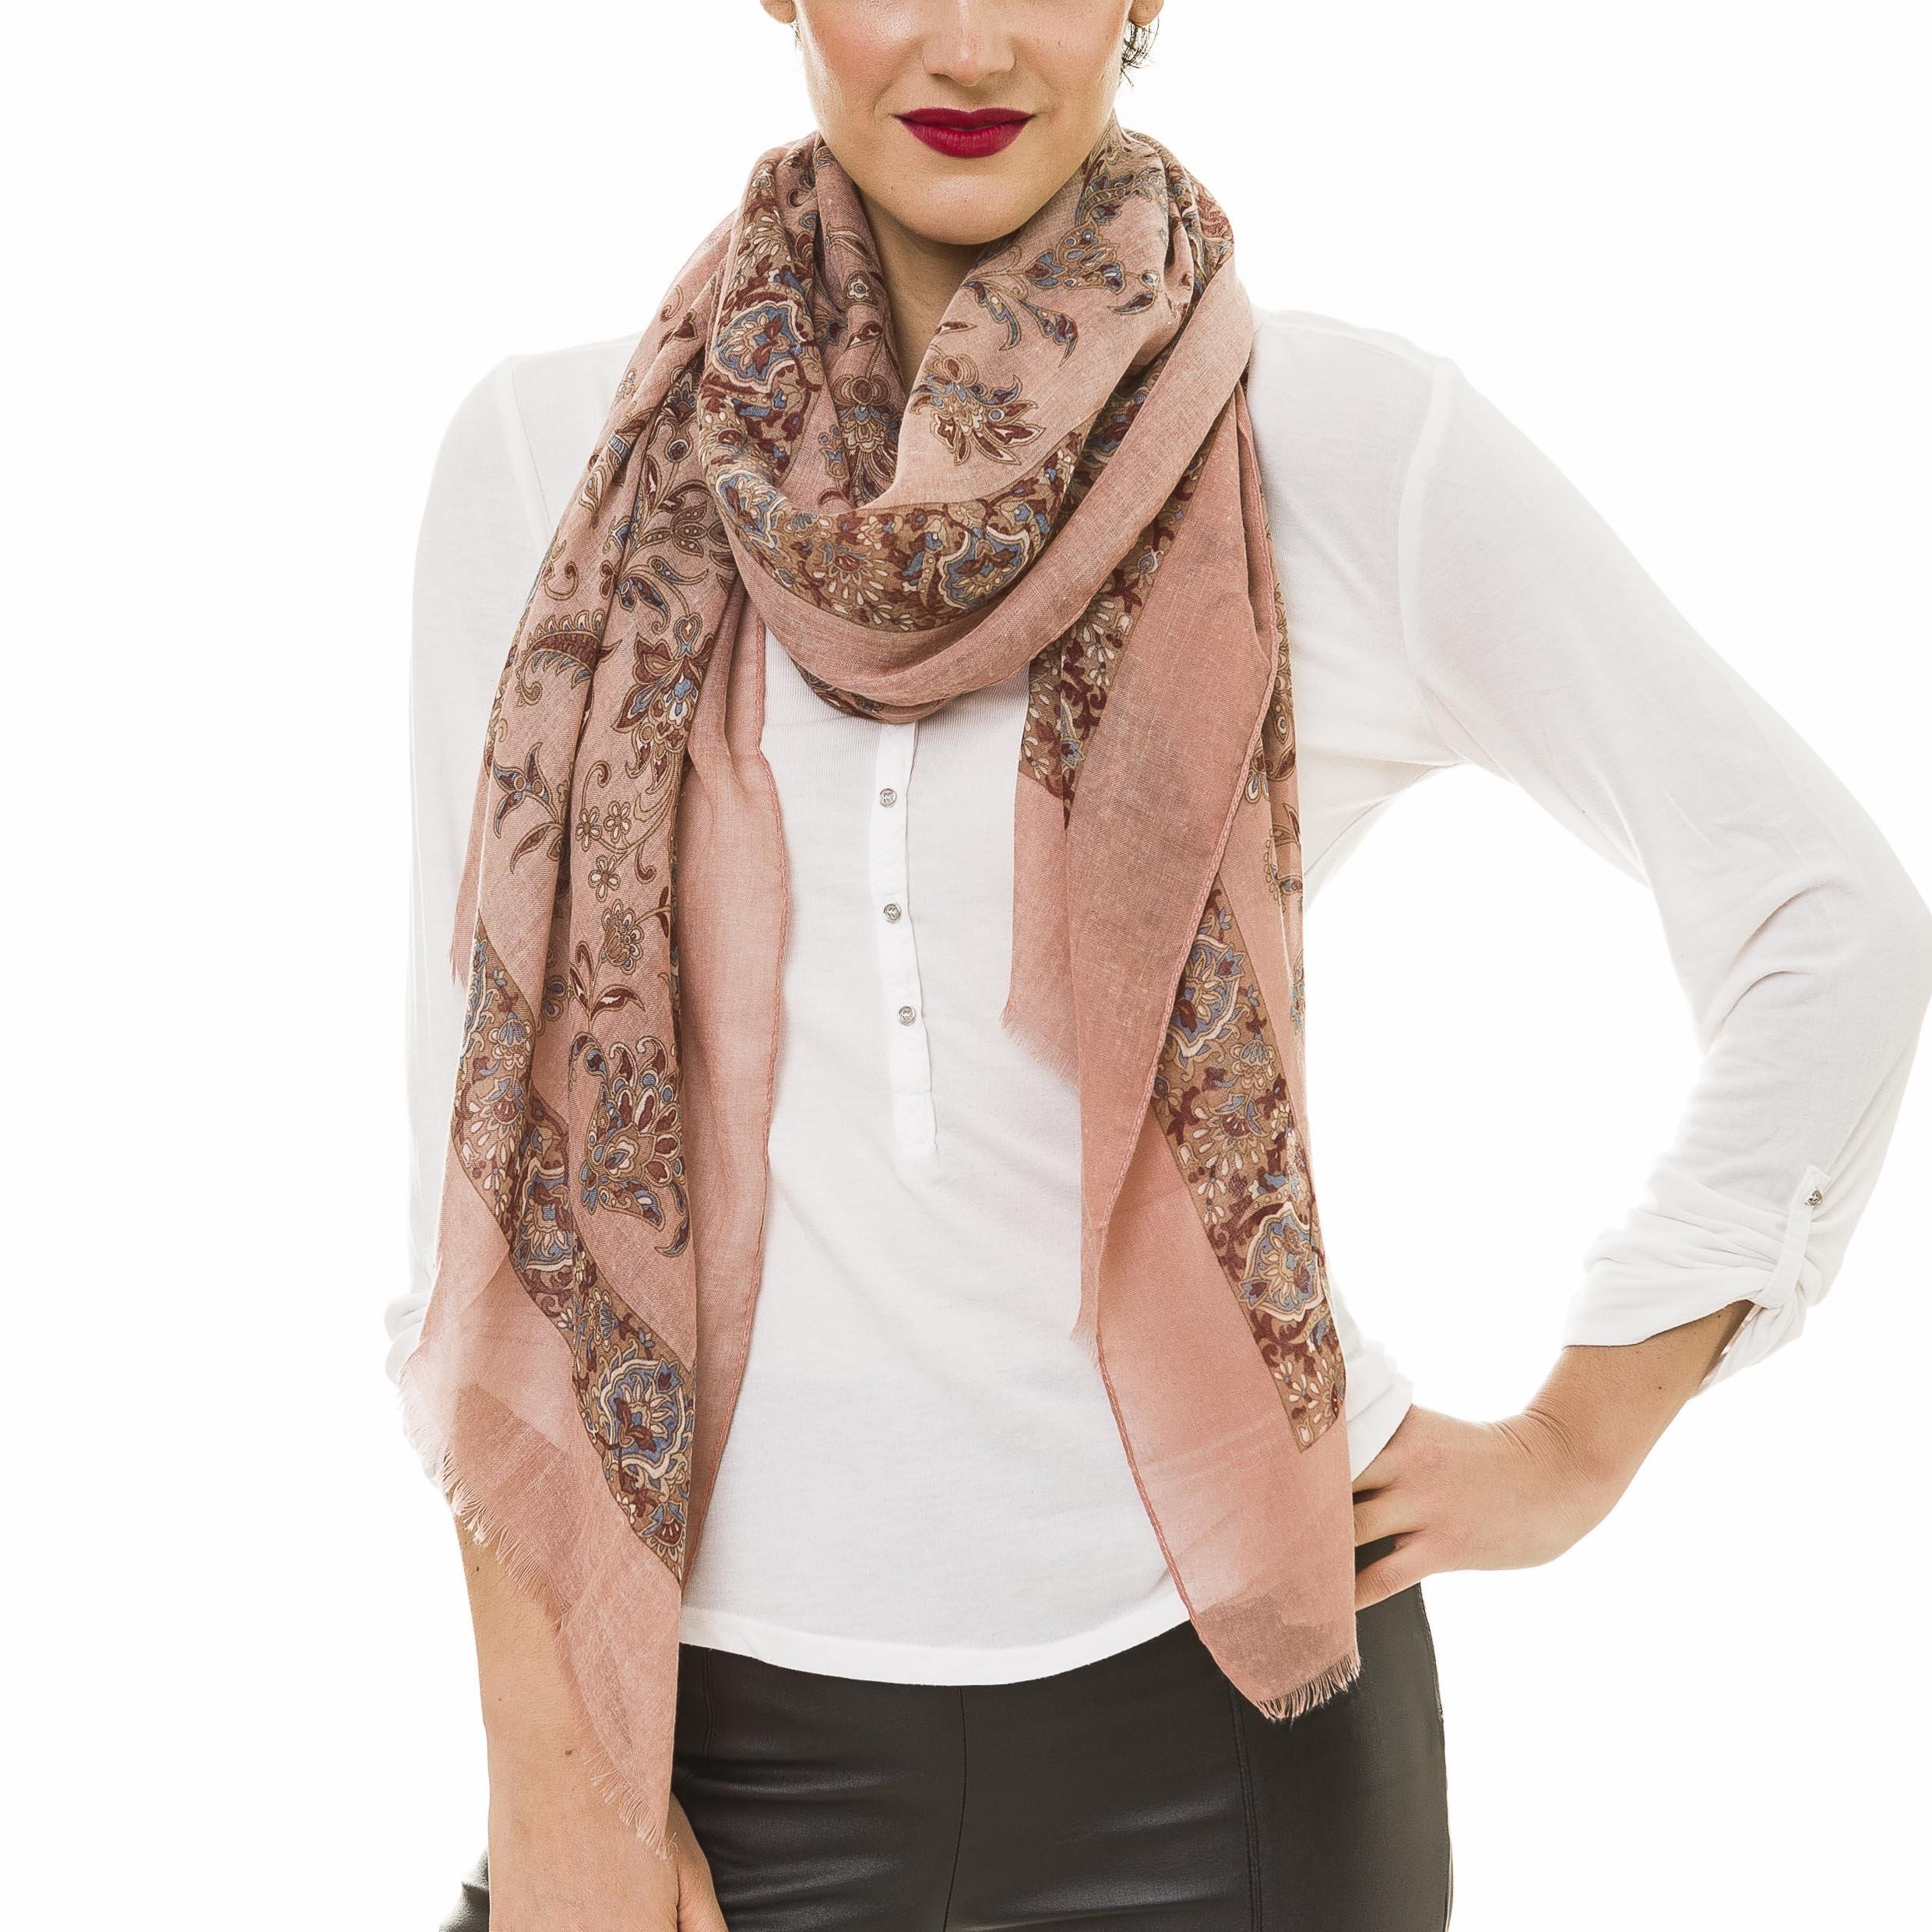 Scarf for Women Lightweight Fashion Summer Fall Scarves Shawl Wraps by Melifluos (NF52-3)